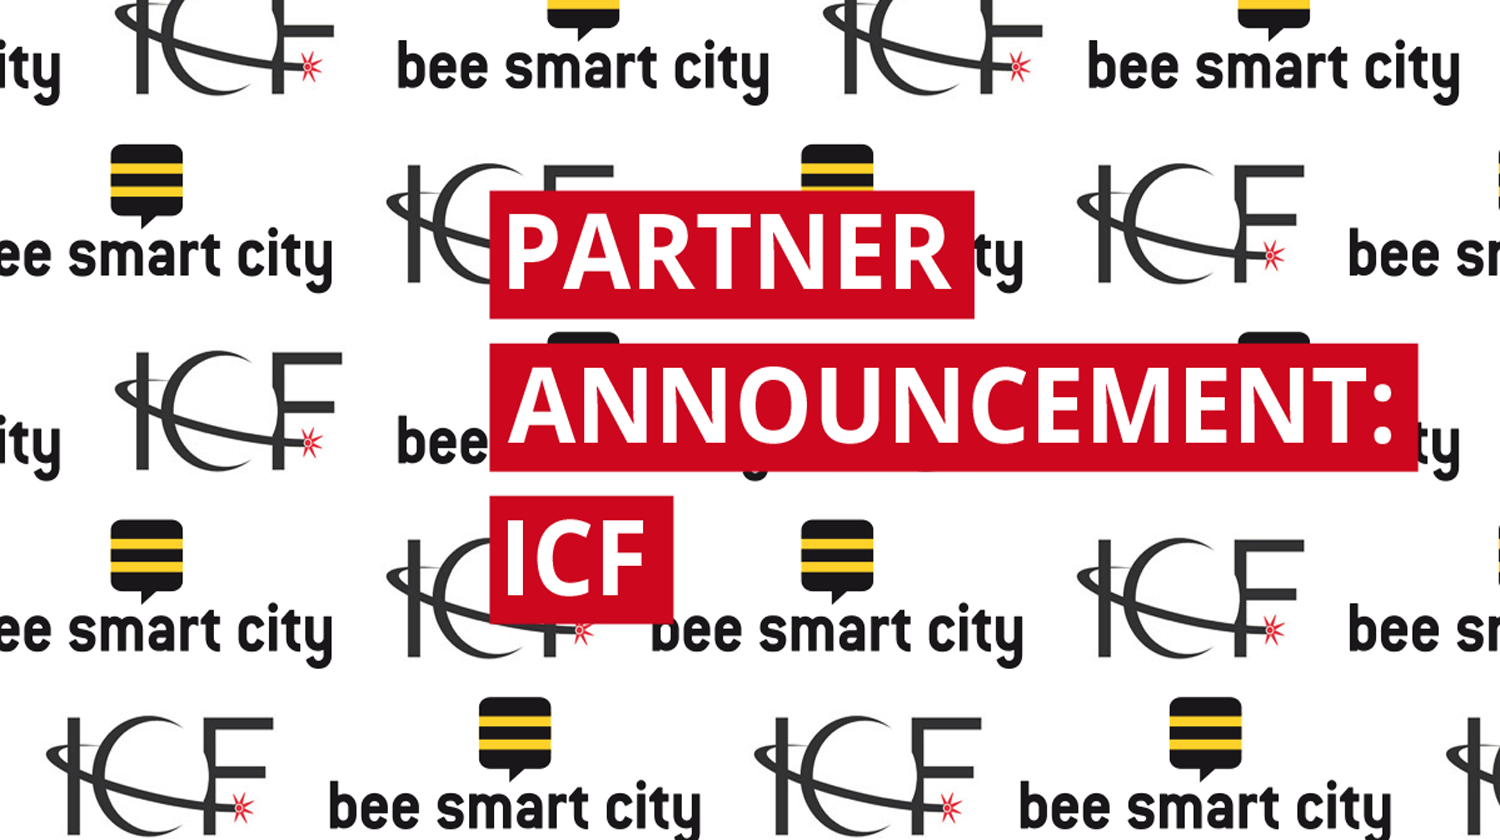 ICF-bee-smart-city-highlight.png